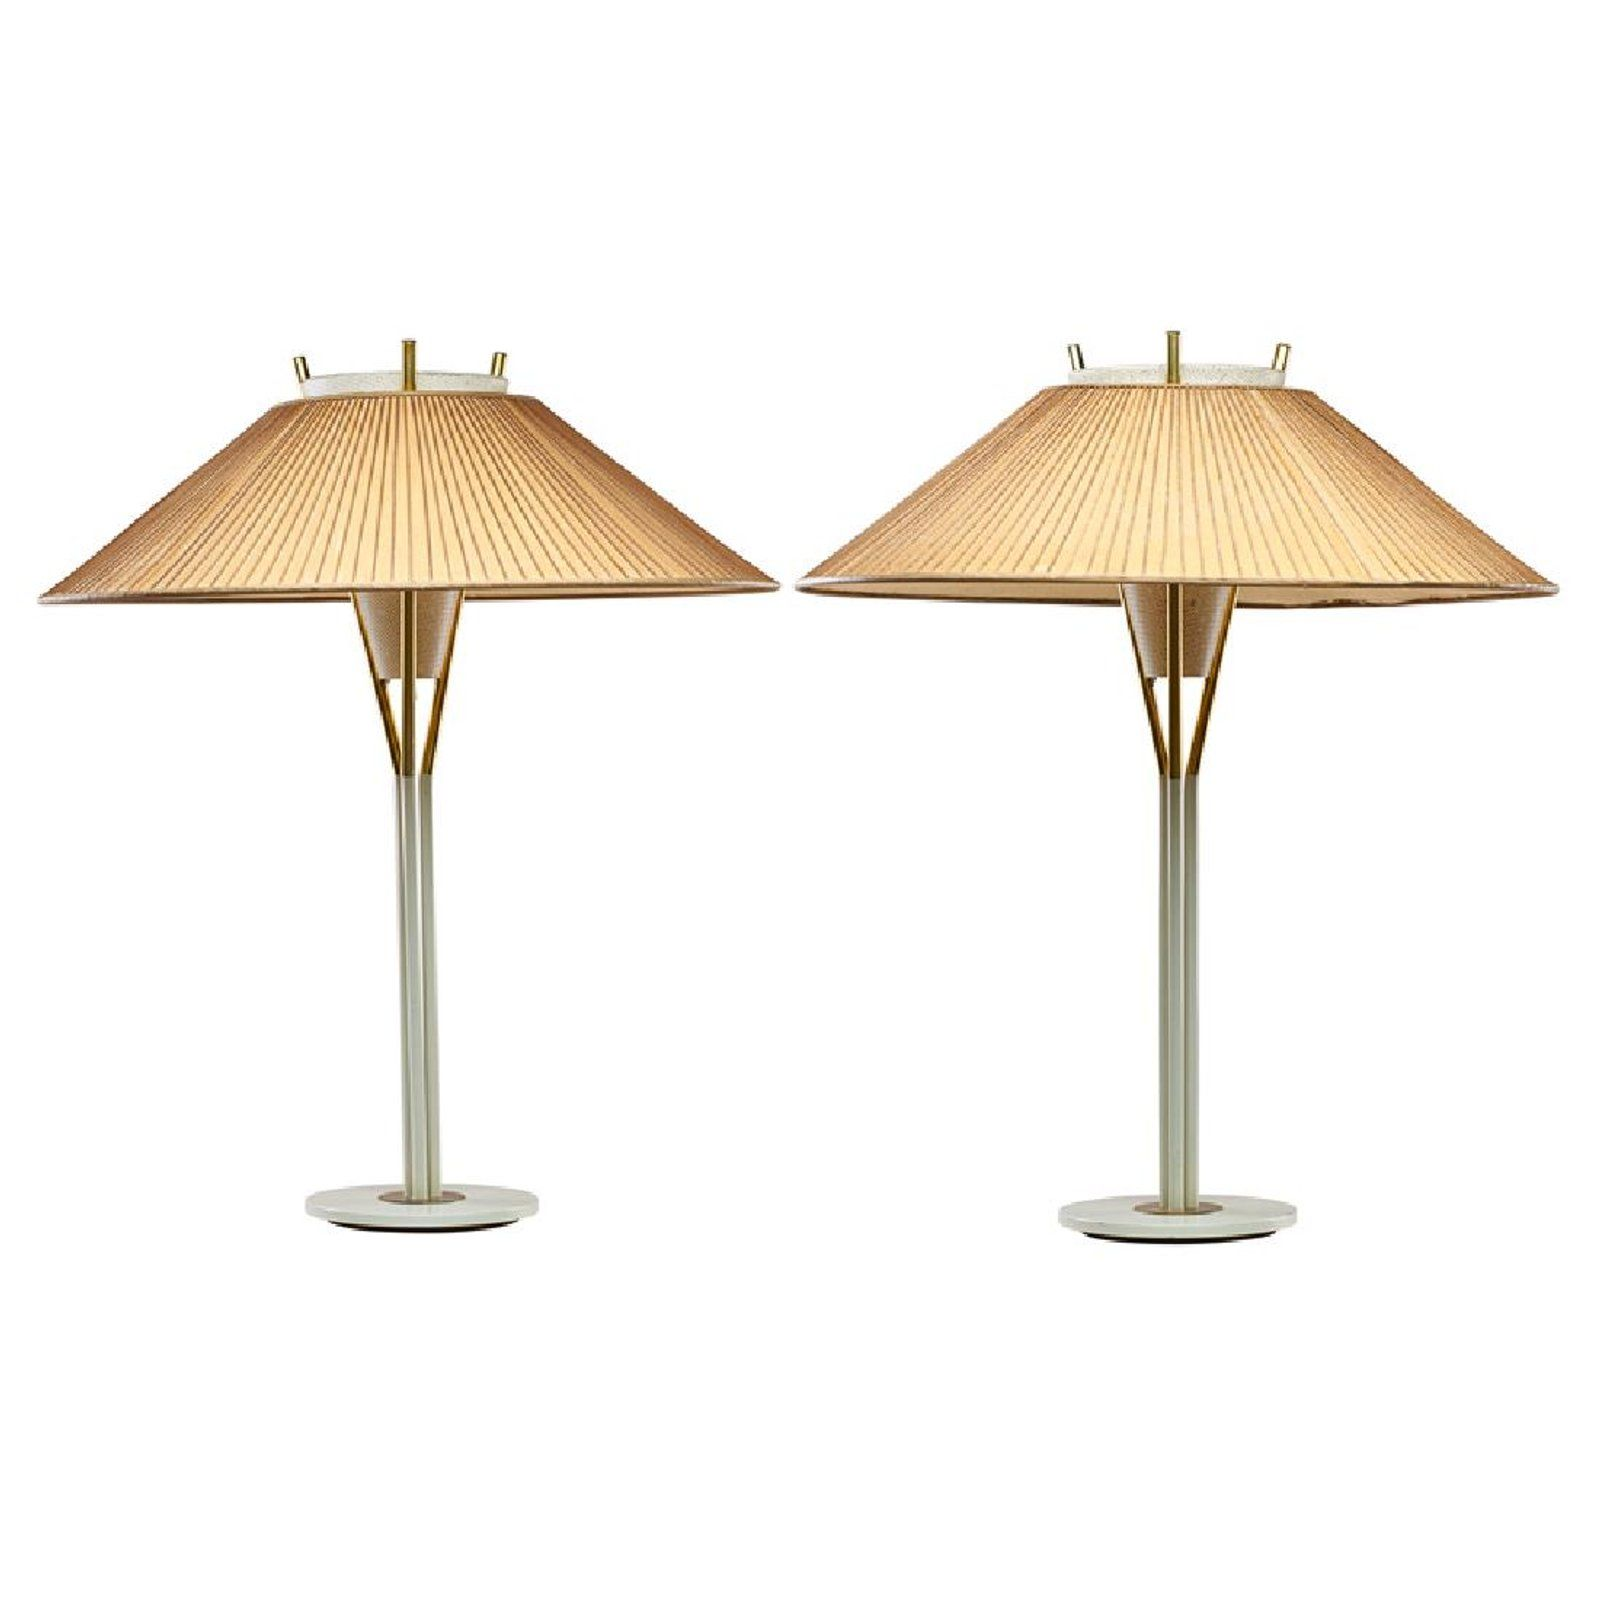 GERALD THURSTON FOR LIGHTOLIER TABLE LAMPS | Lamp, Table